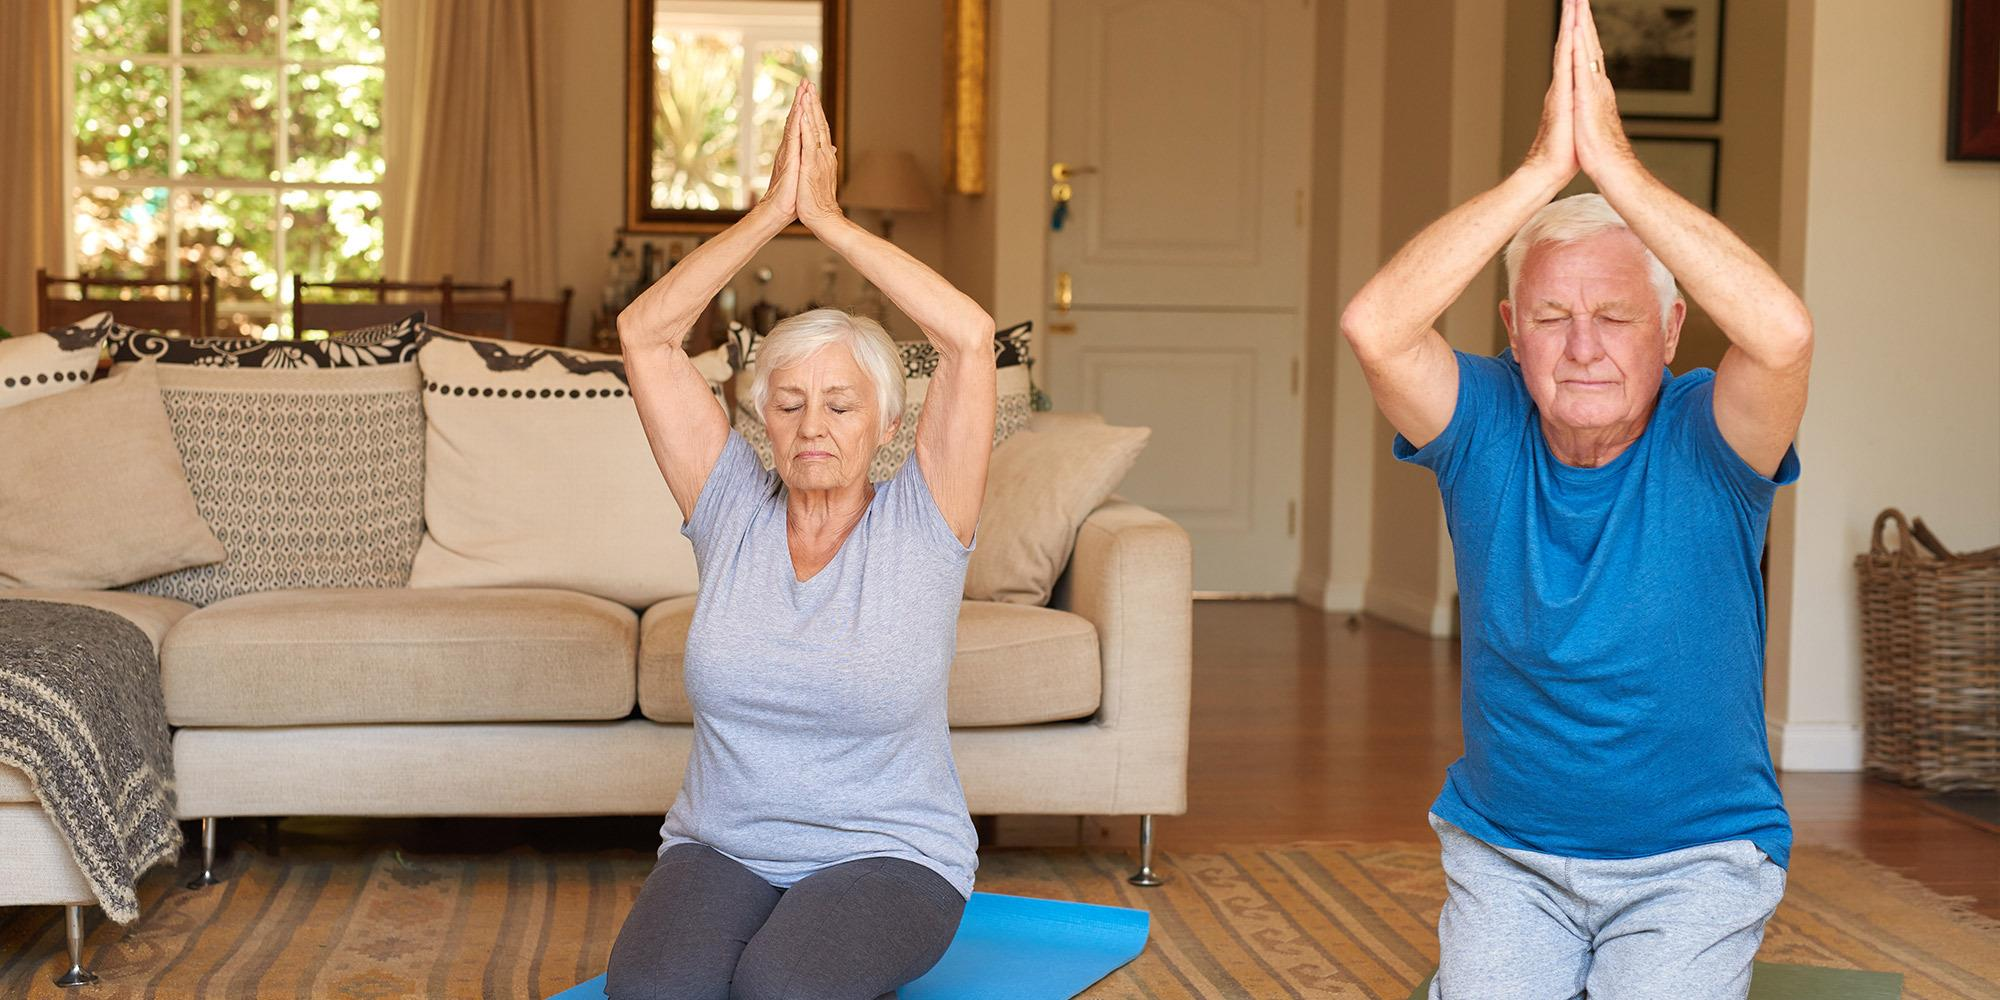 3 forms of exercise that may help improve your balance